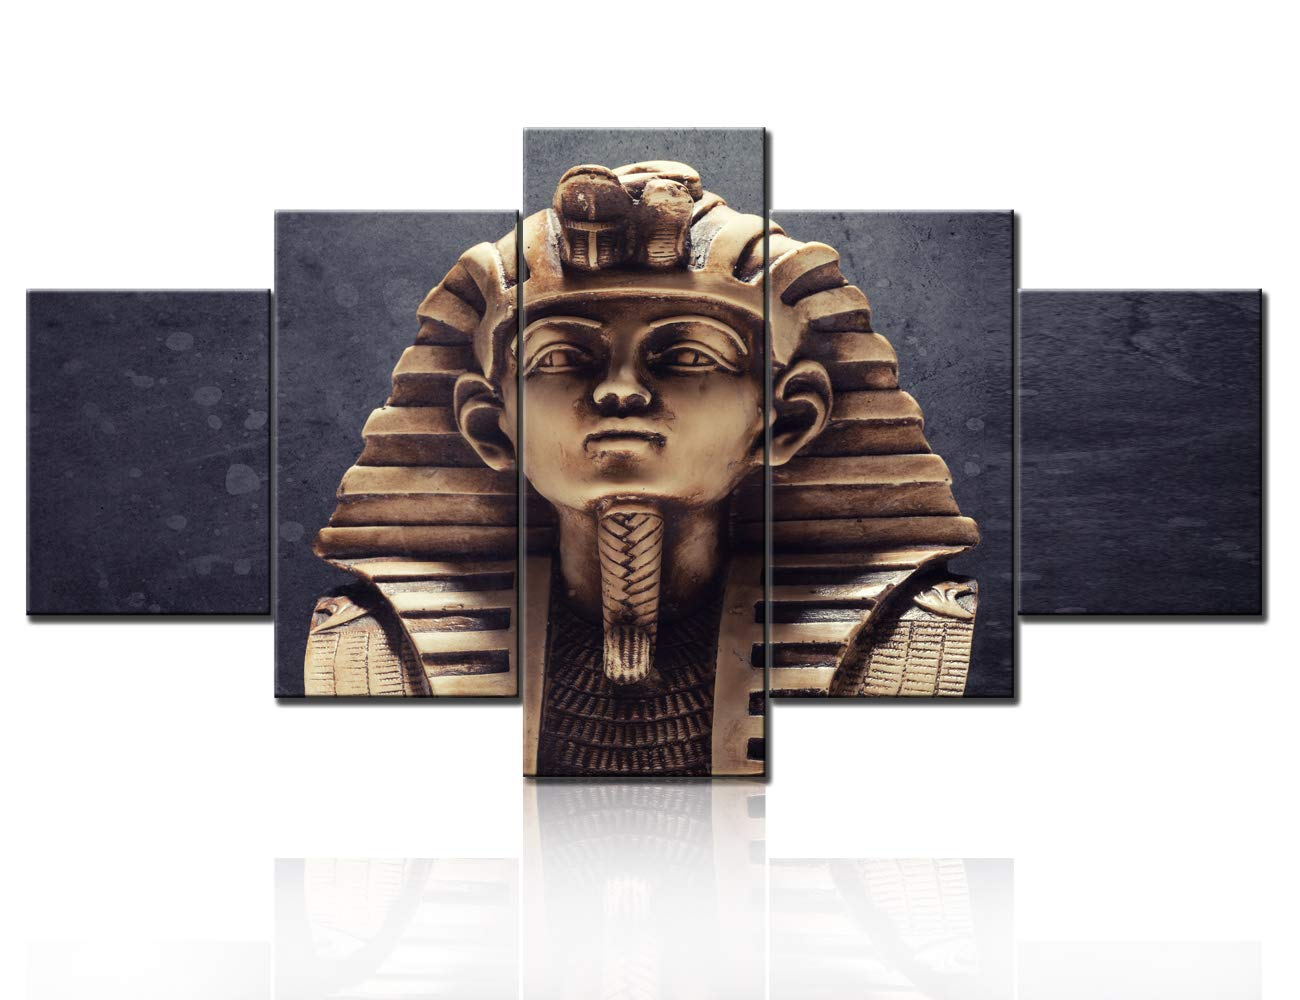 Wall Pictures for Living Room Egyptian Pharaoh Tutankhamun Paintings 5 Panel Canvas Wall Art Modern Home Decor HD Prints Ancient Sculpture Artwork Framed Gallery-Wrapped Ready to Hang 60Wx 32H